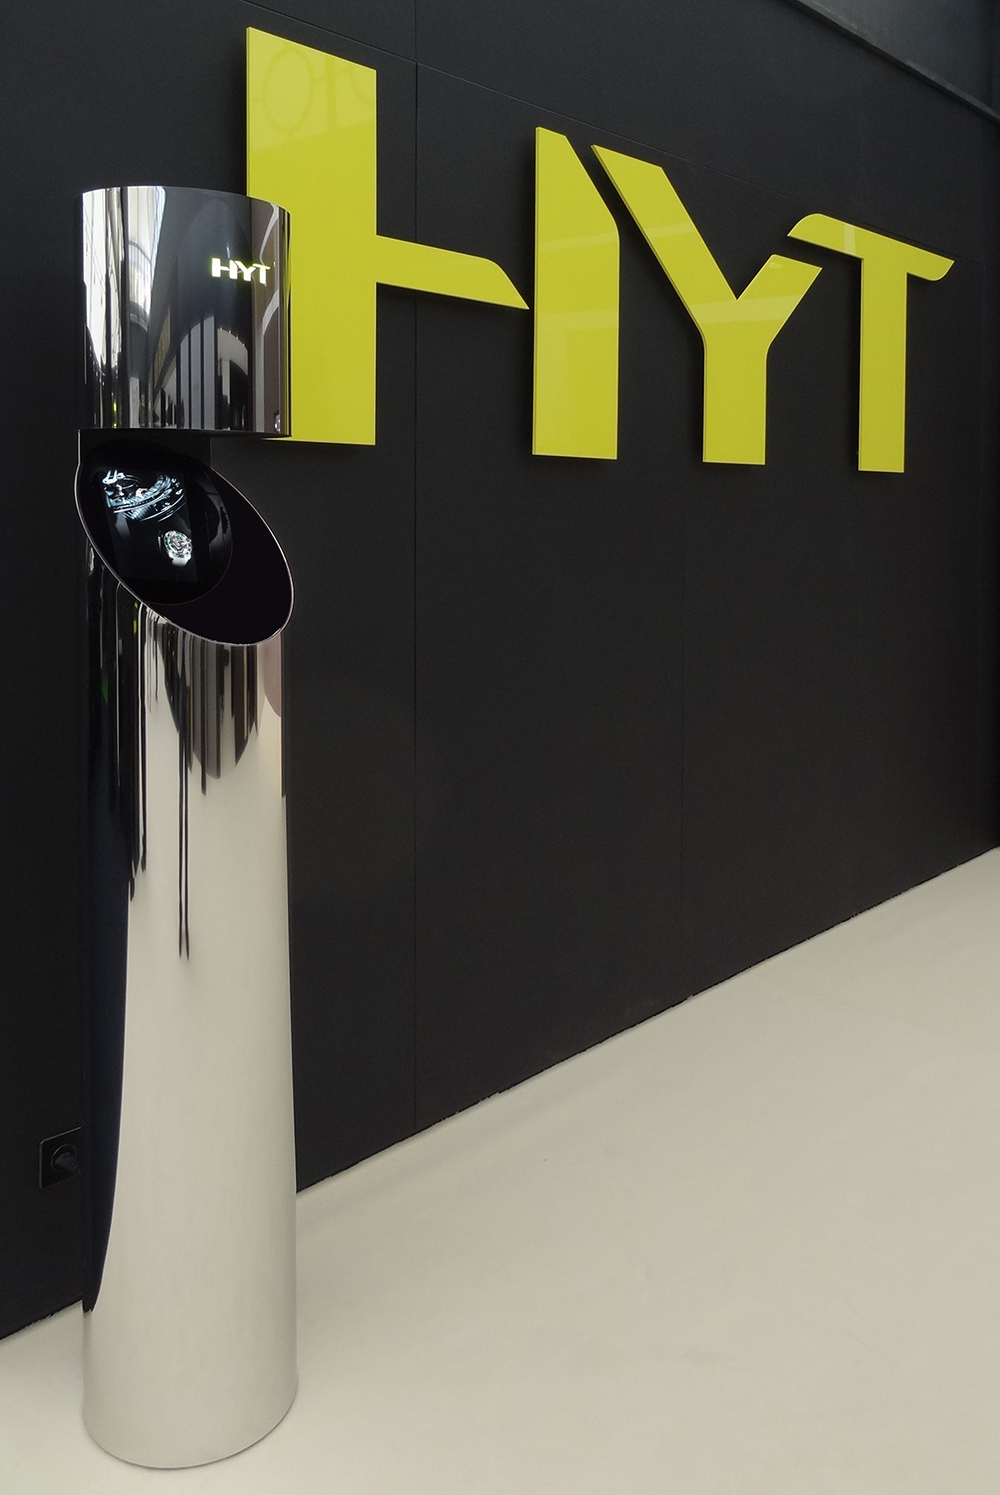 HYT and its holographic tubes with ultra-violet light at Baselworld 2012.